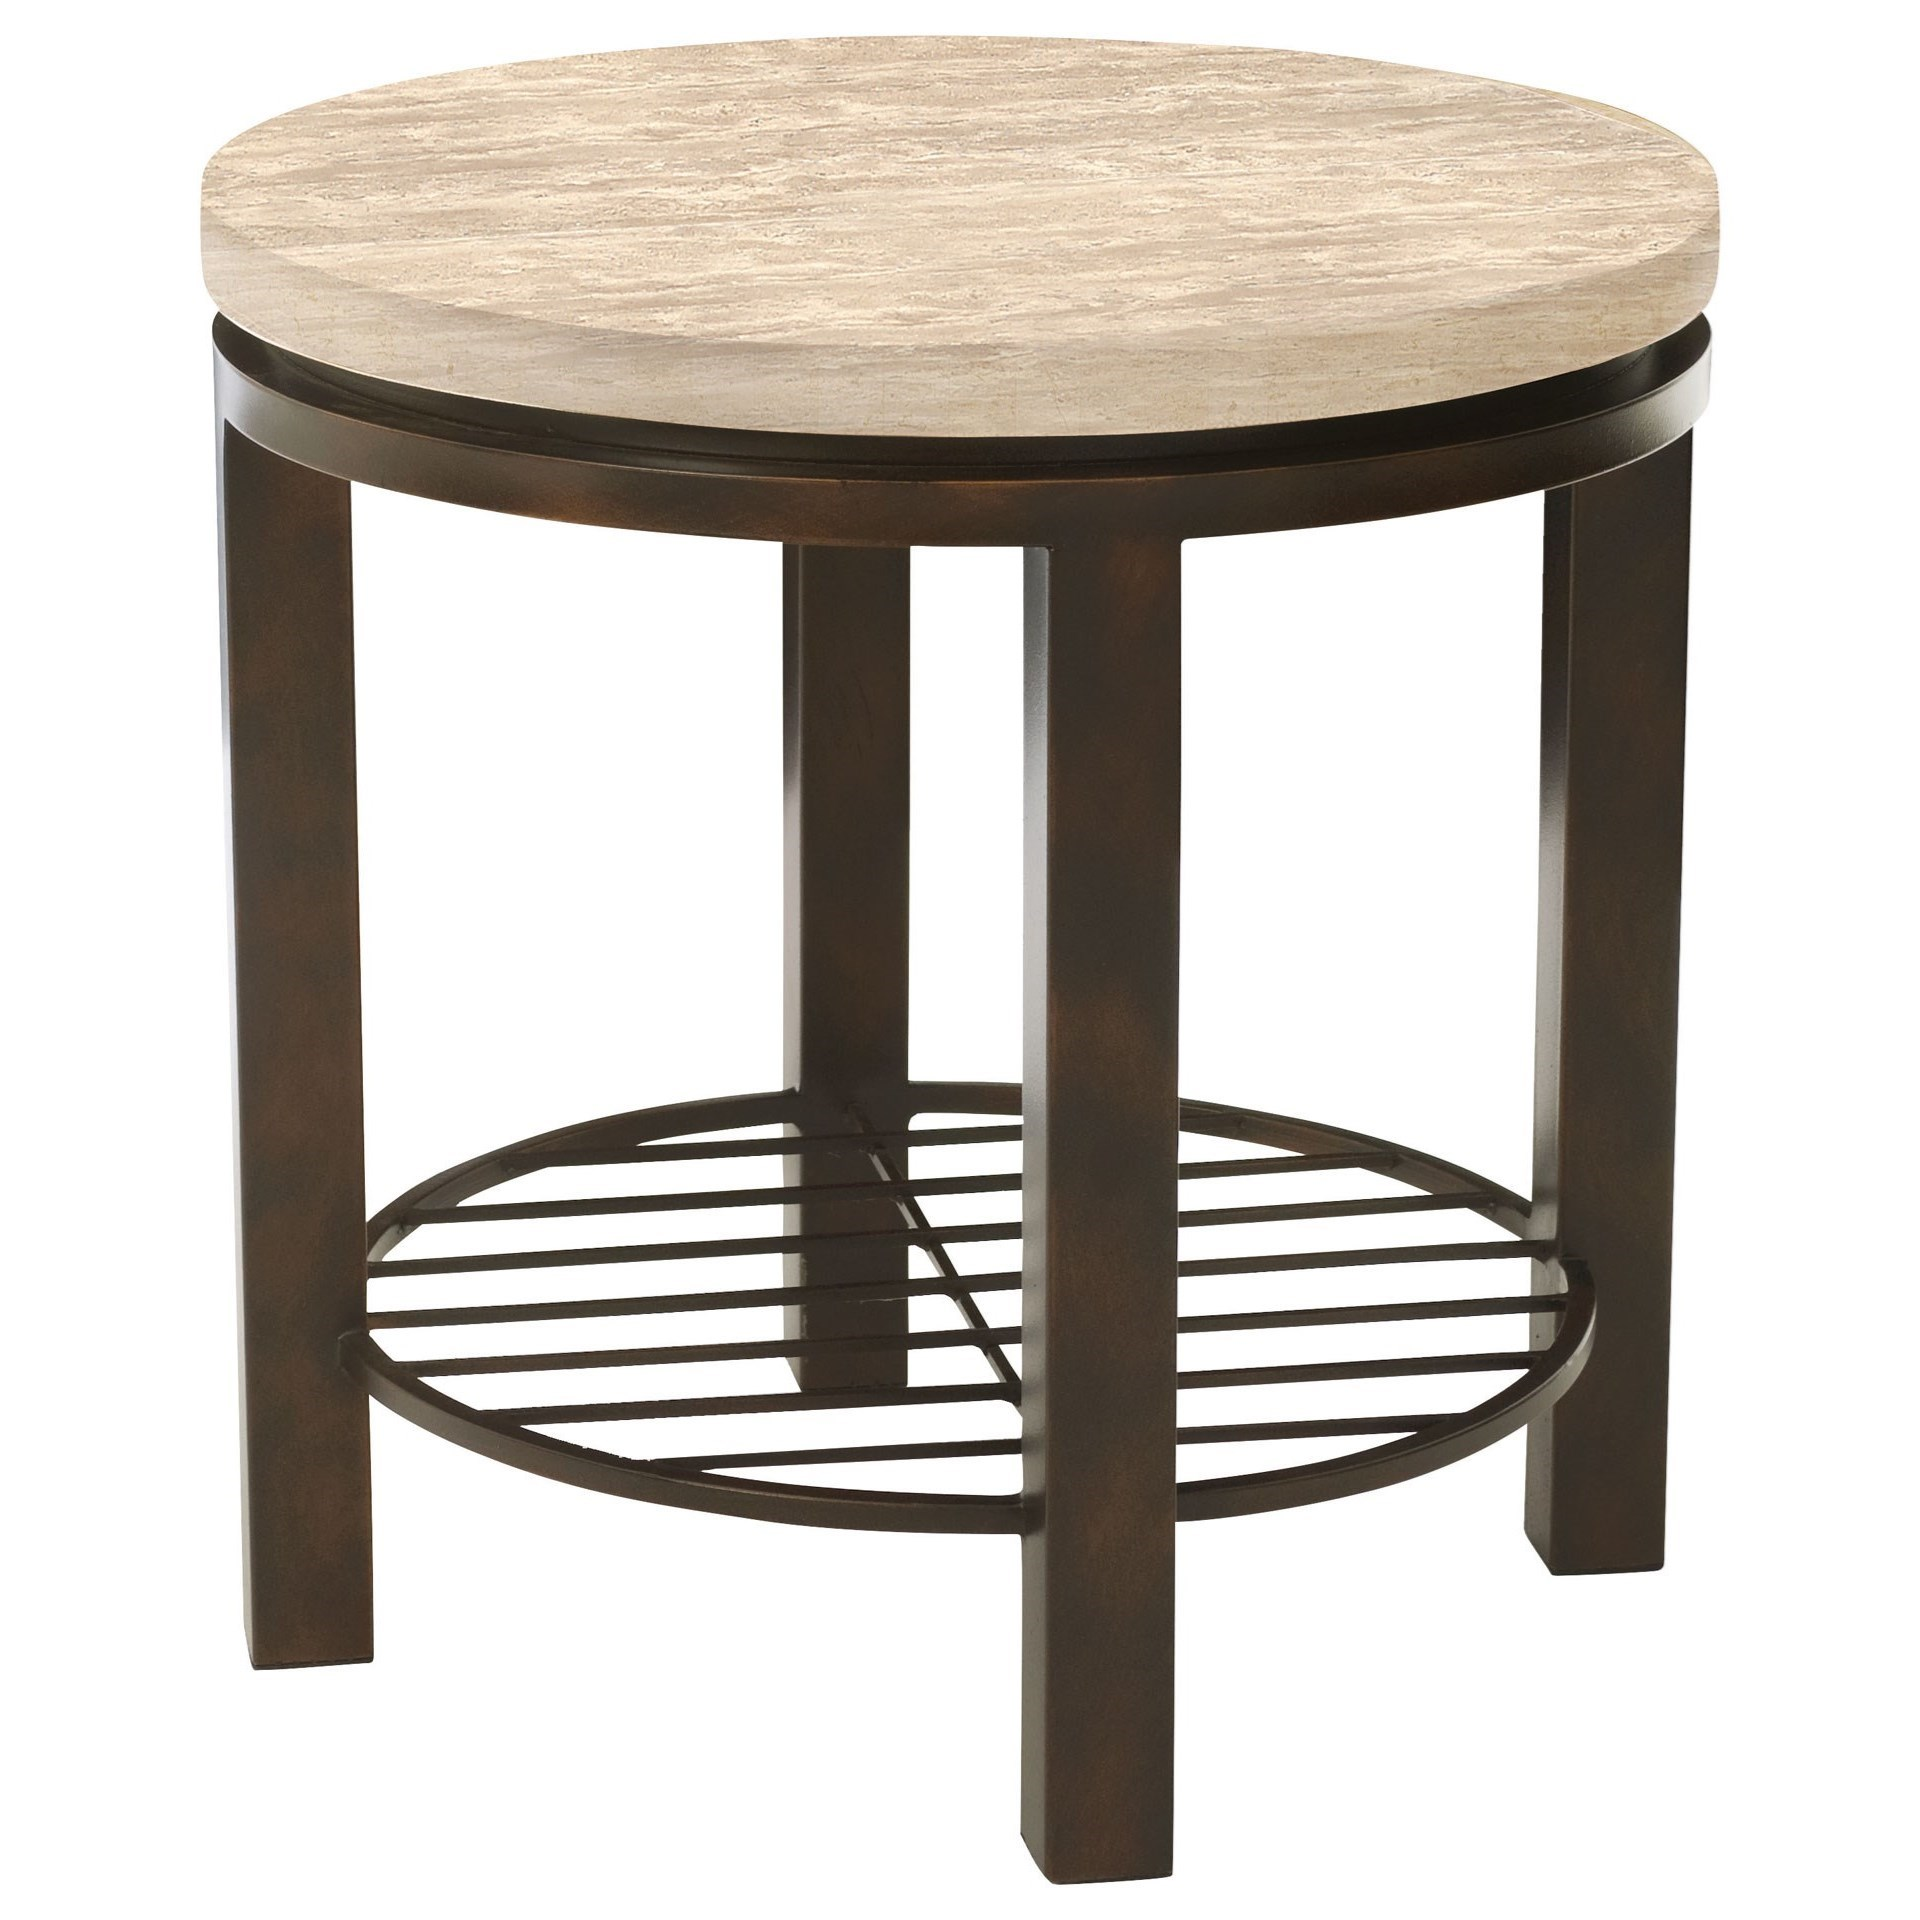 Bernhardt Tempo Round End Table - Item Number: 498-123